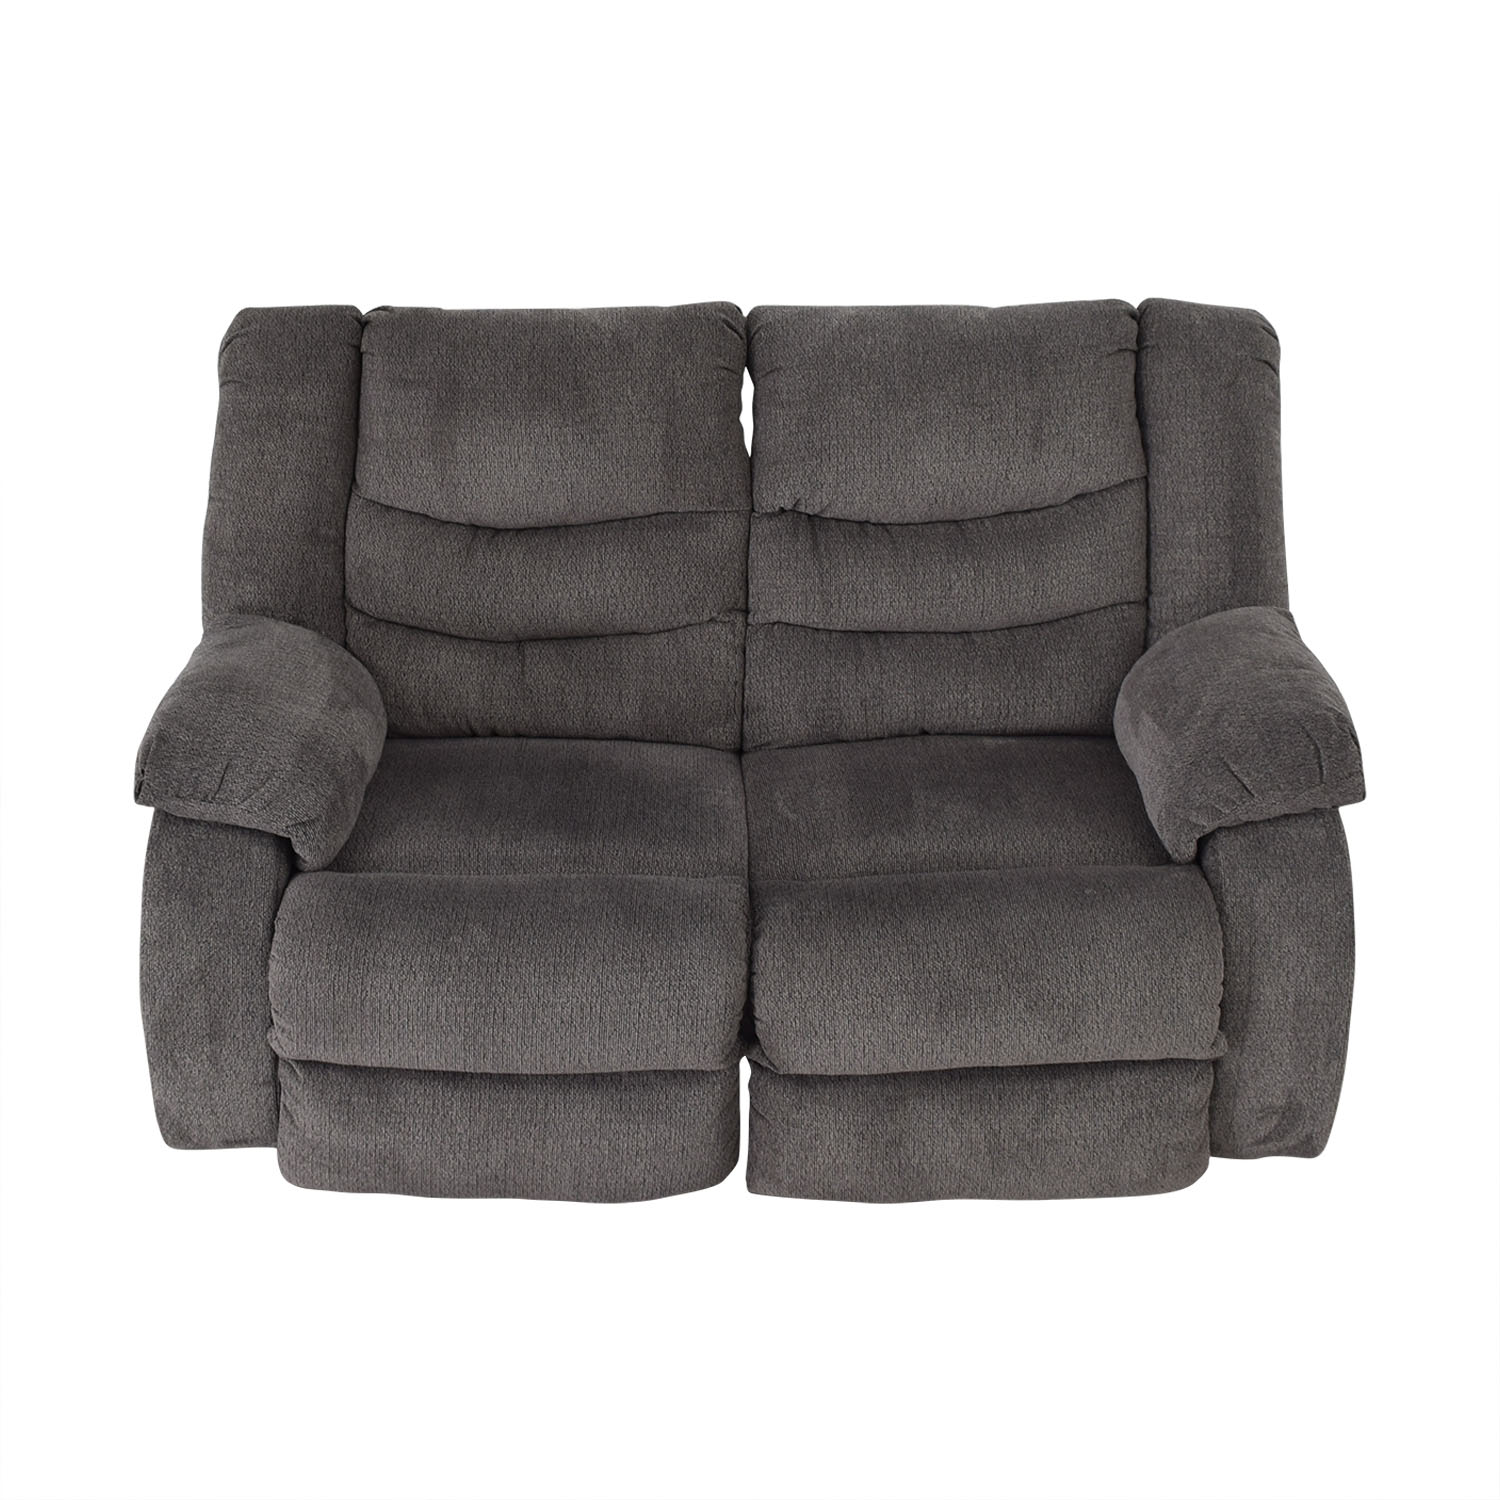 Ashley Furniture Ashley Furniture Gray Reclining Loveseat Dark Gray